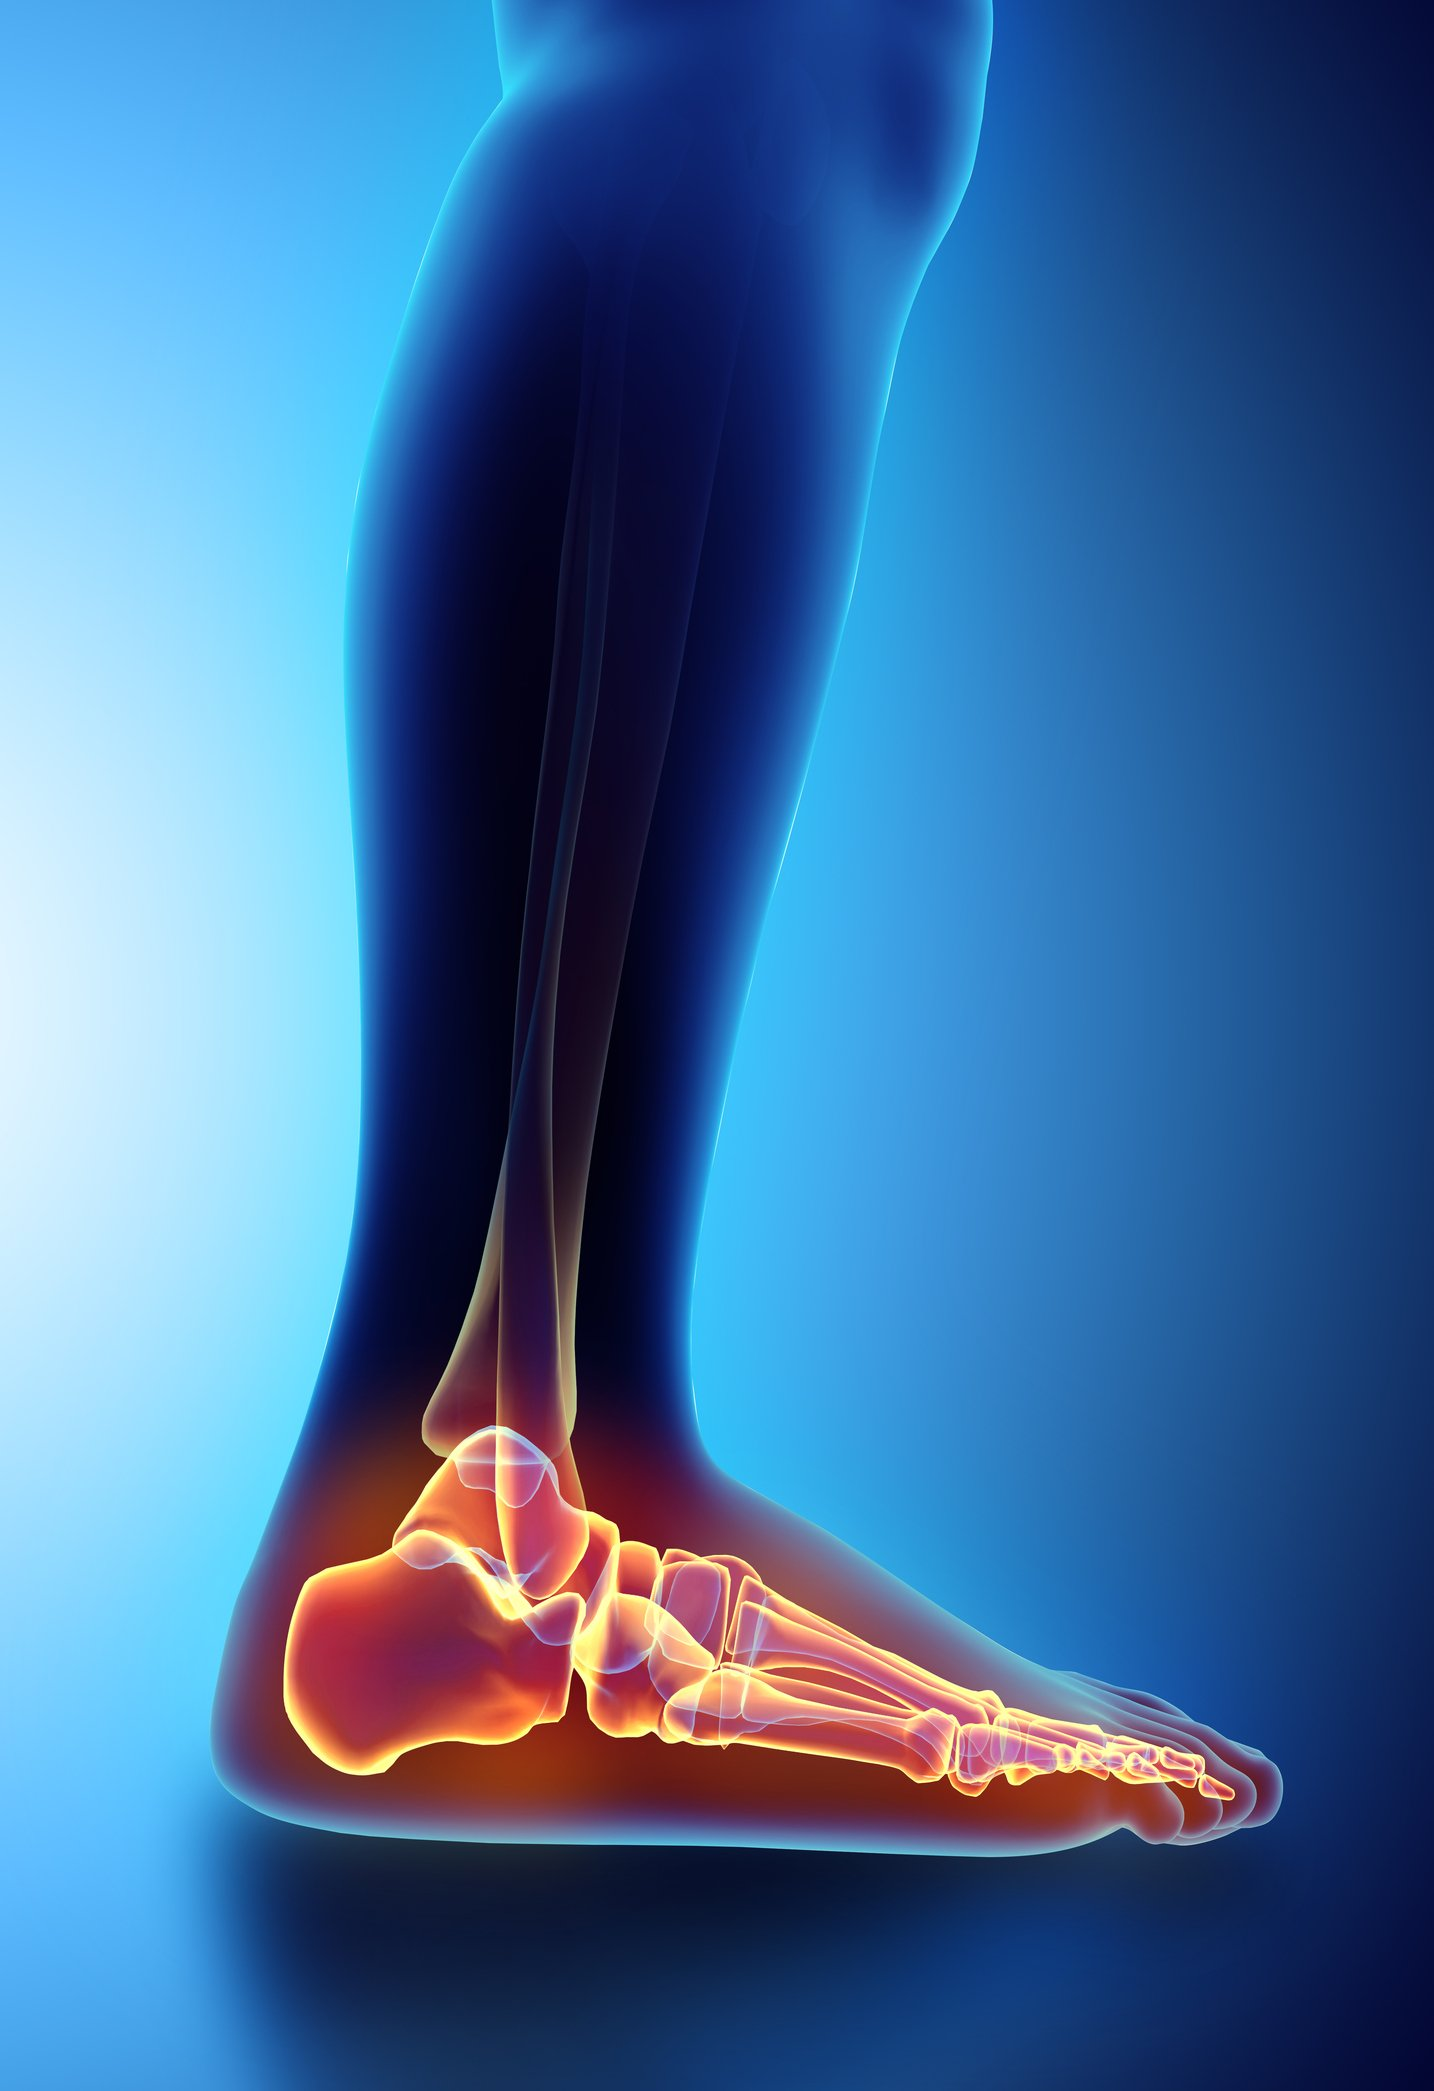 Plantar Fasciitis or Inflammation of the Plantar Fascia